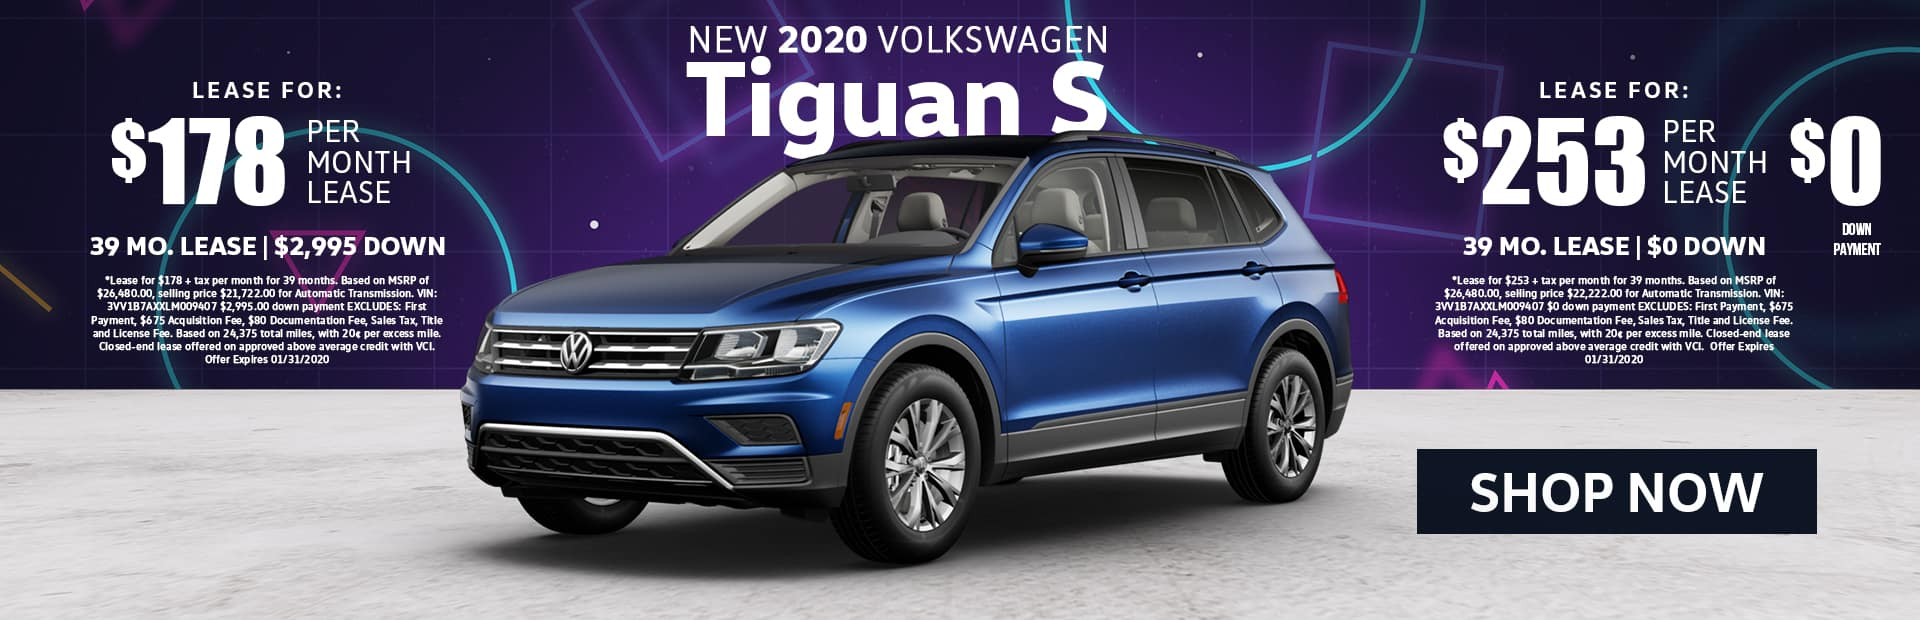 New 2020 Tiguan Lease Special